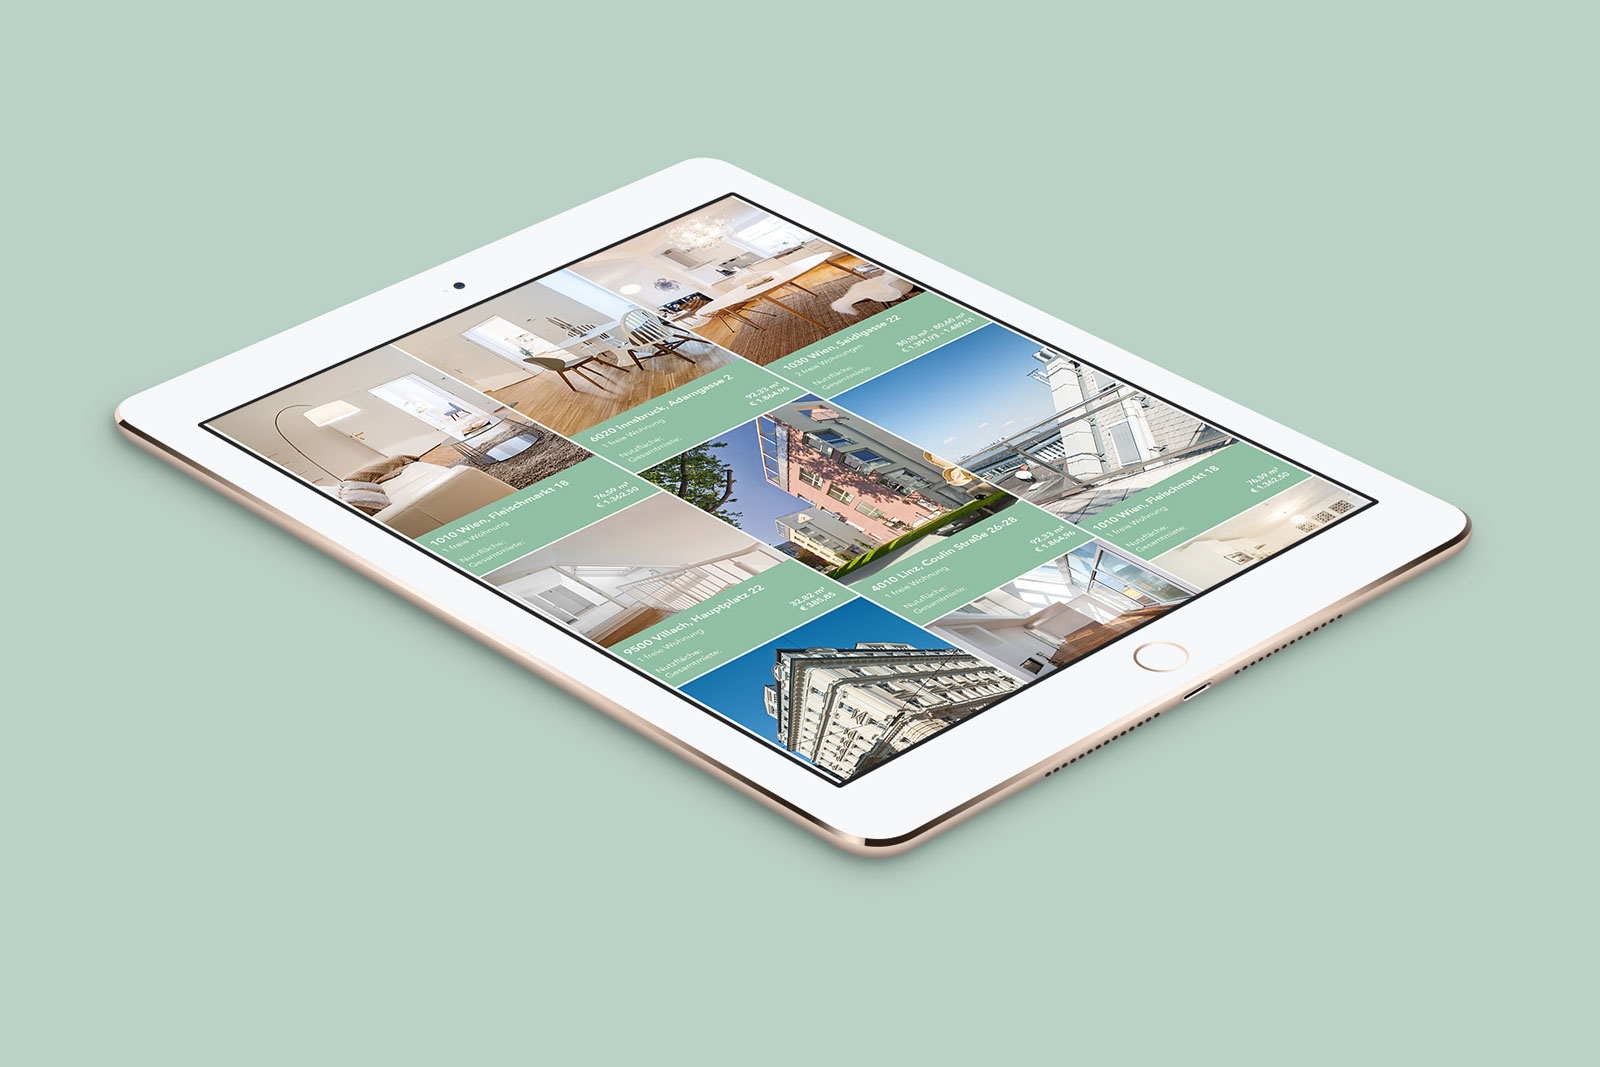 Ig Immobilien Ipad 01